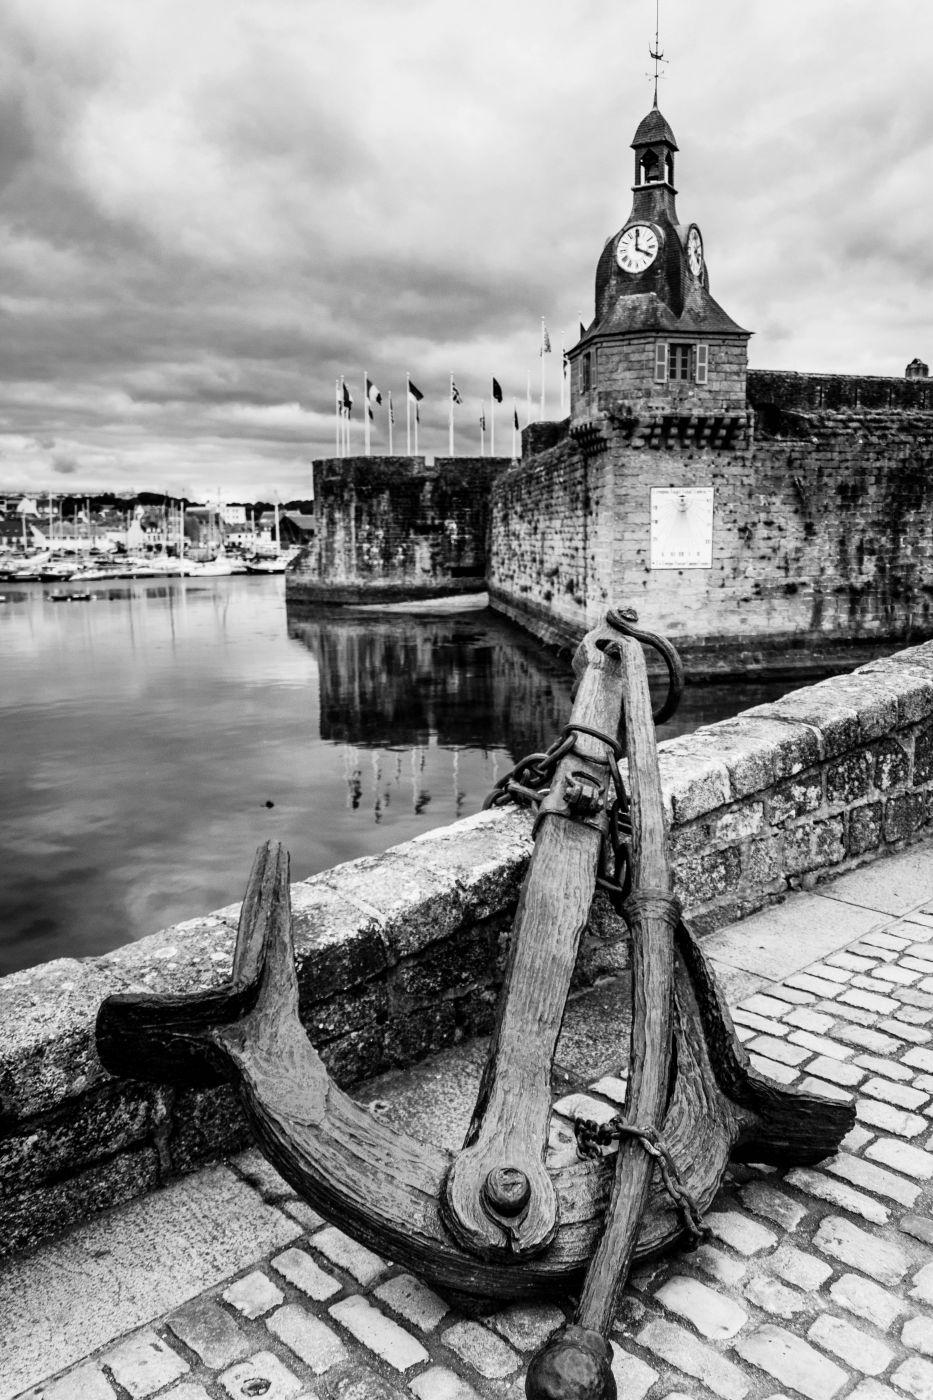 Closed city of Concarneau., France